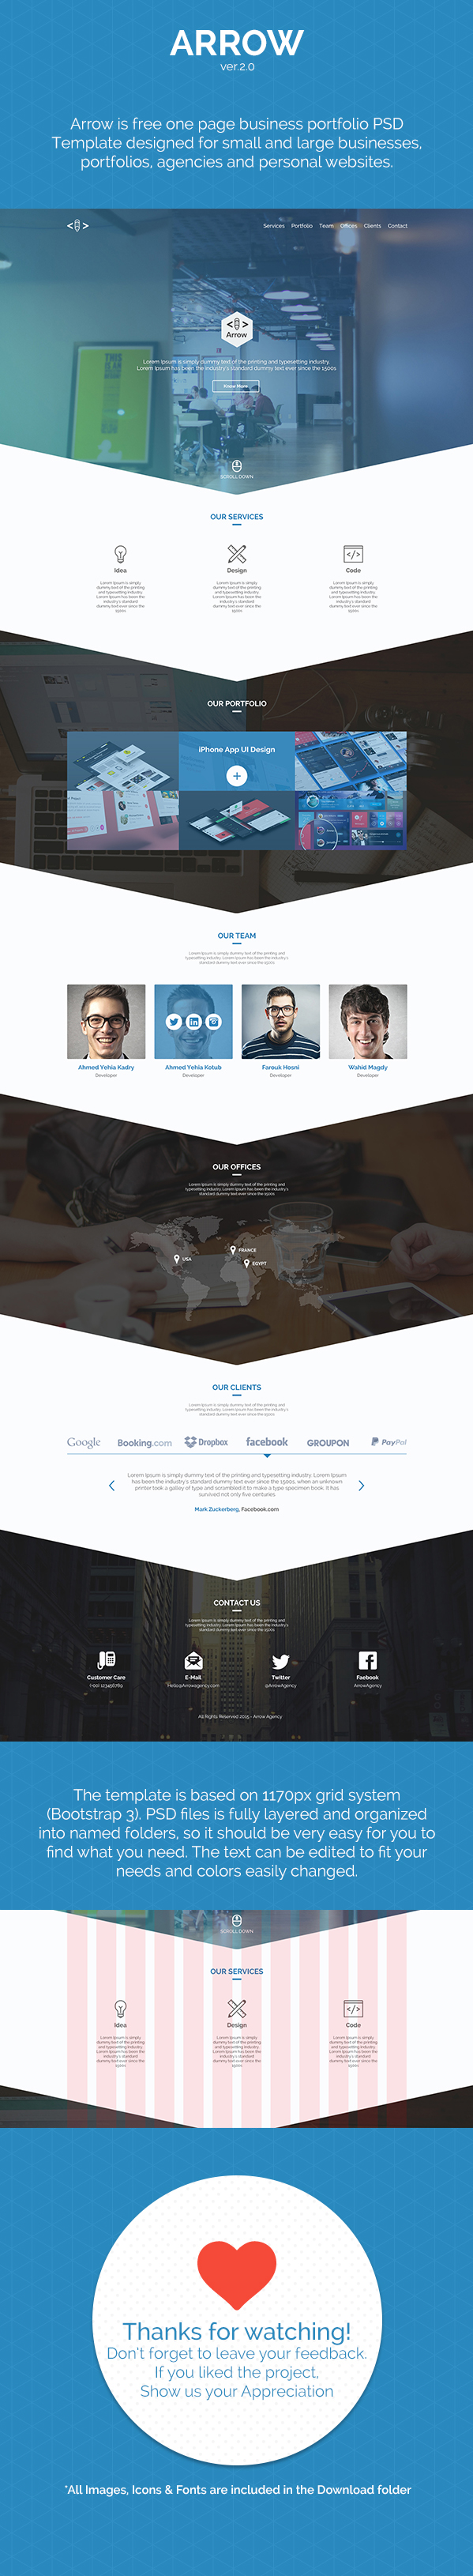 Arrow free one page business portfolio psd template on behance arrow free one page business portfolio psd template on behance flashek Choice Image